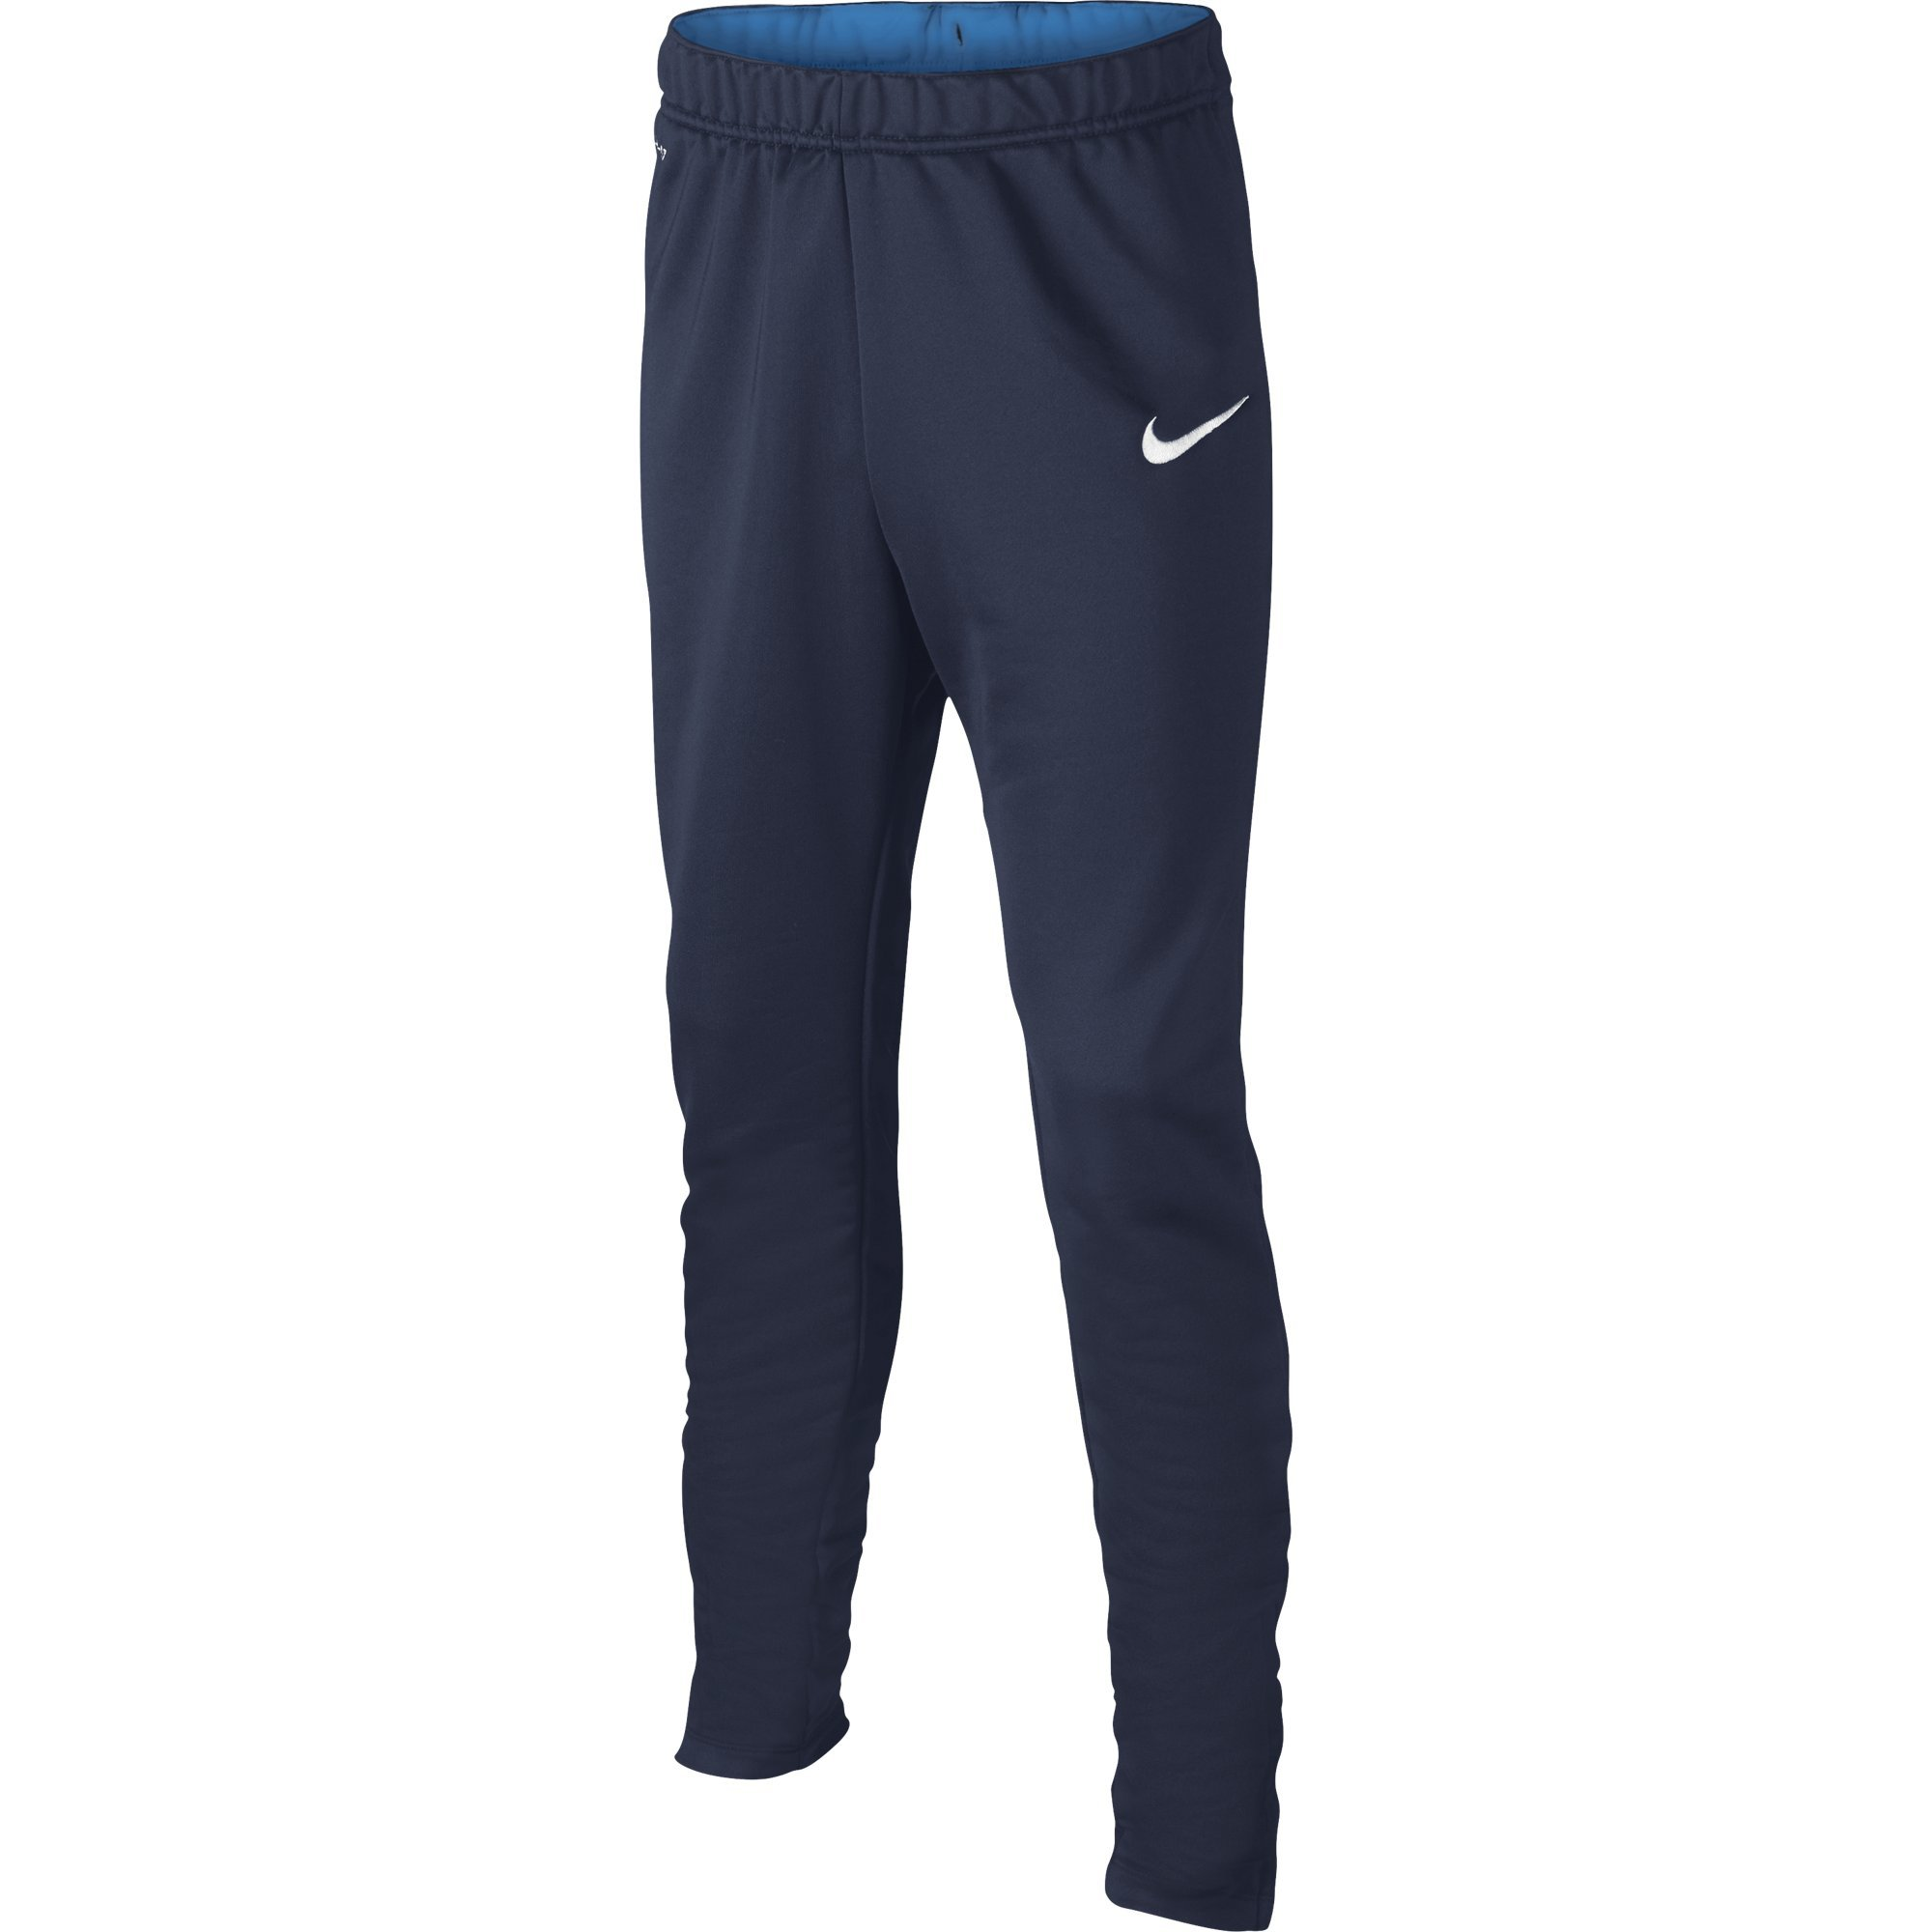 Nike Kids Boys' Academy Tech Pant (Little Big Kids), Midnight Navy/Light Photo Blue/White, SM (7-8 by Nike